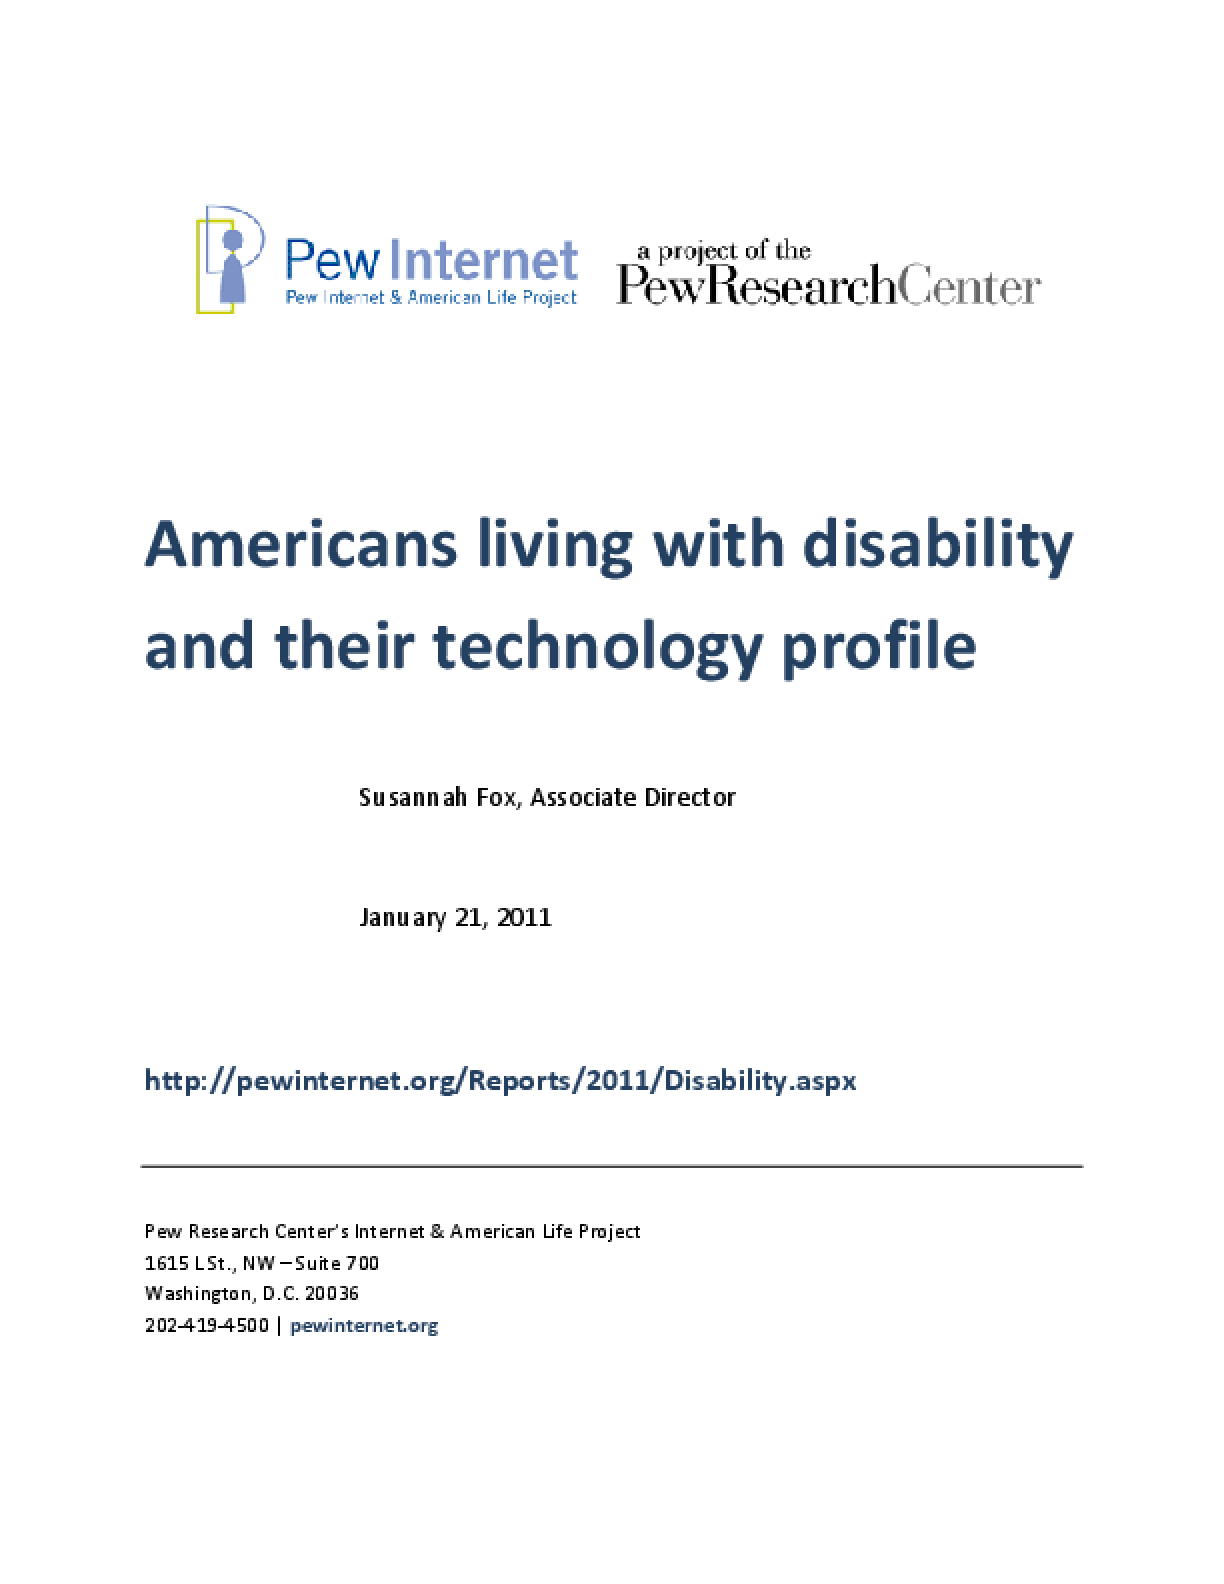 Americans Living With Disability and Their Technology Profile